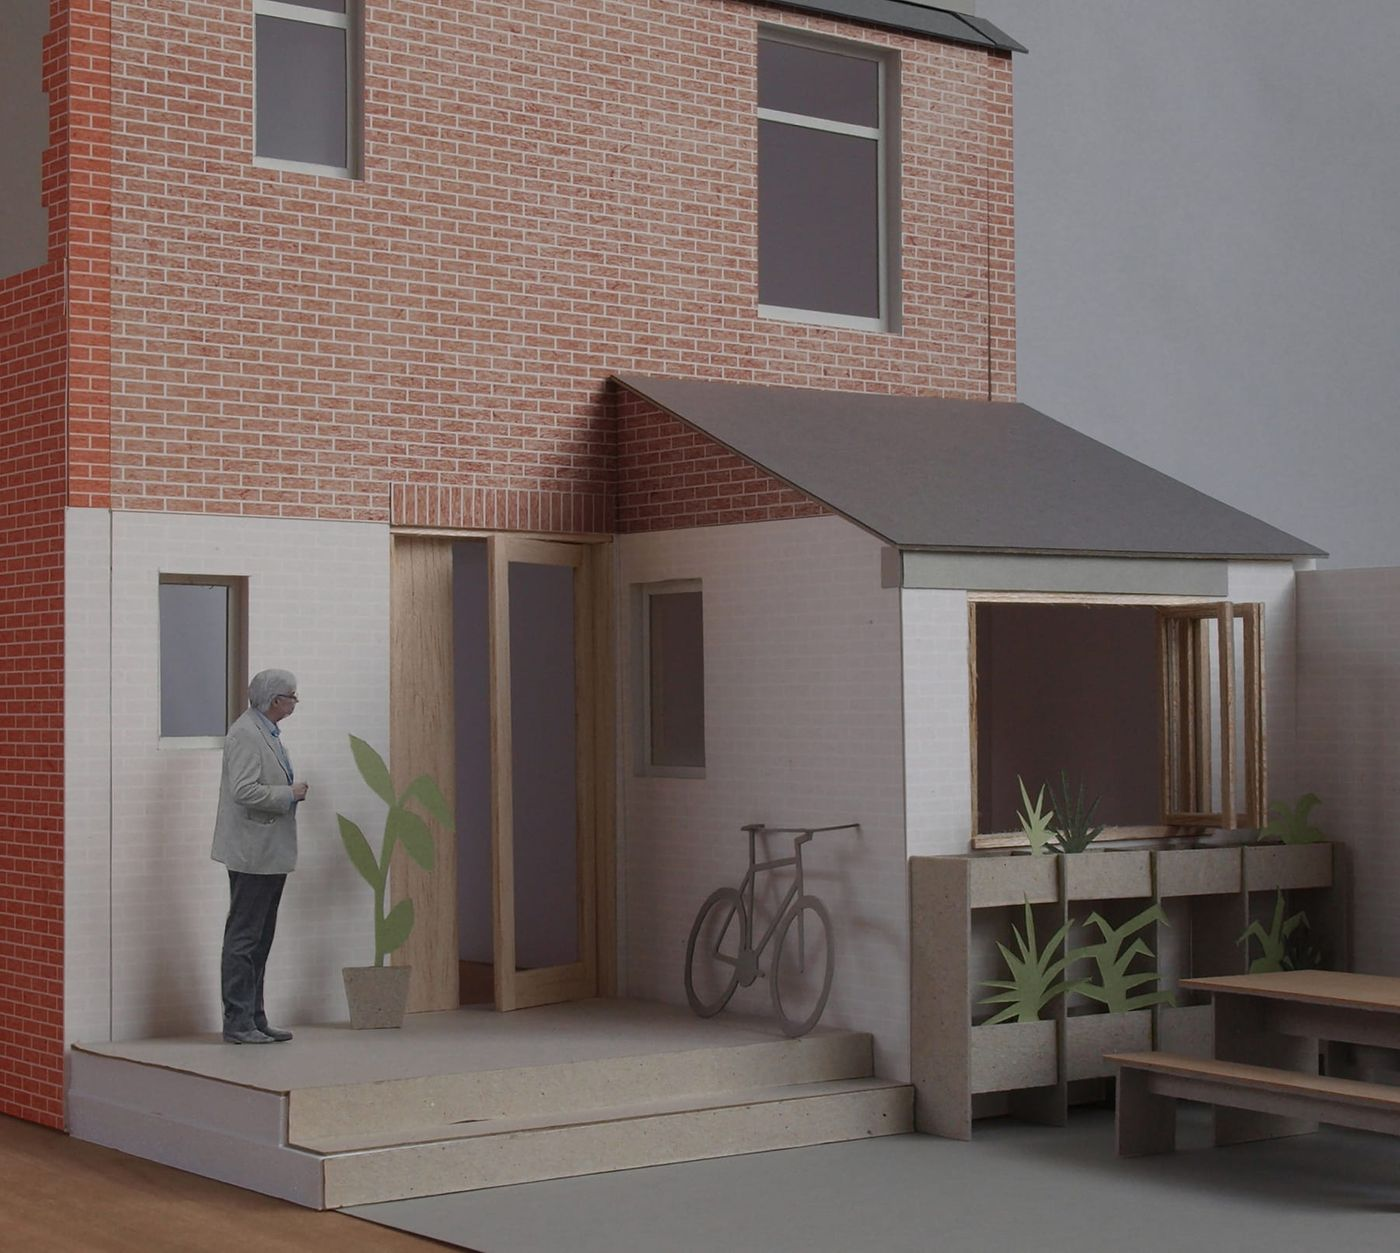 External view of the scale model of the proposed dormer extension and refurbishment for the Whalley Road project designed by From Works.